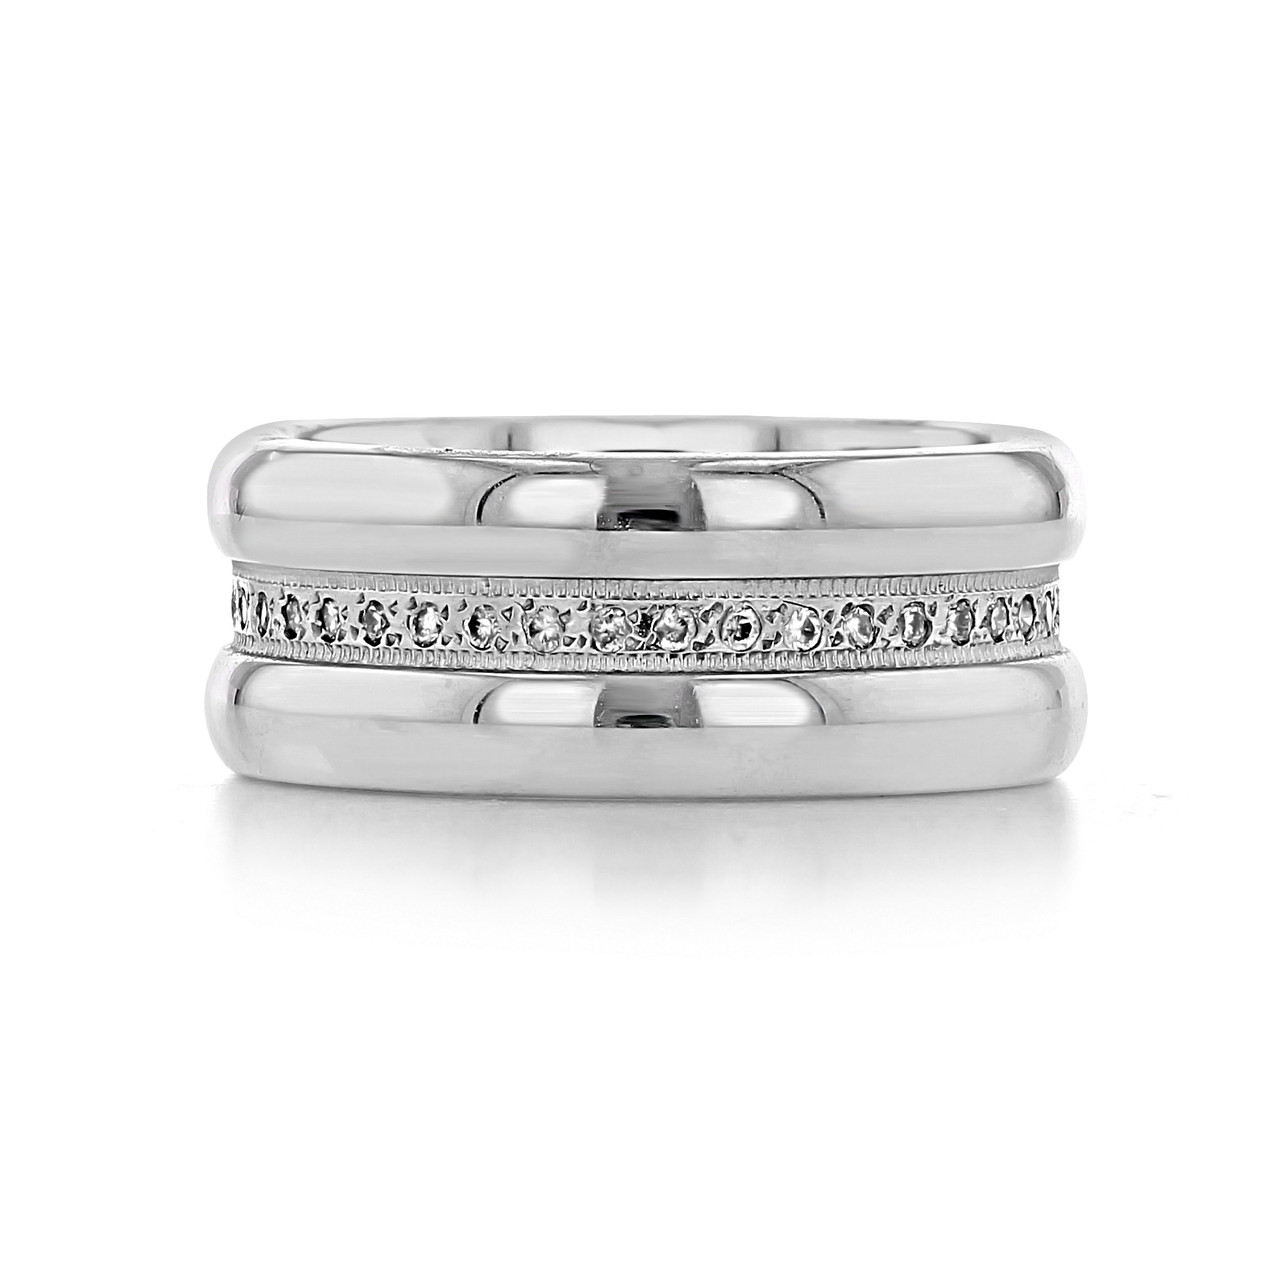 It is a graphic of Pavé Set Wide Diamond Wedding Band (LB42)